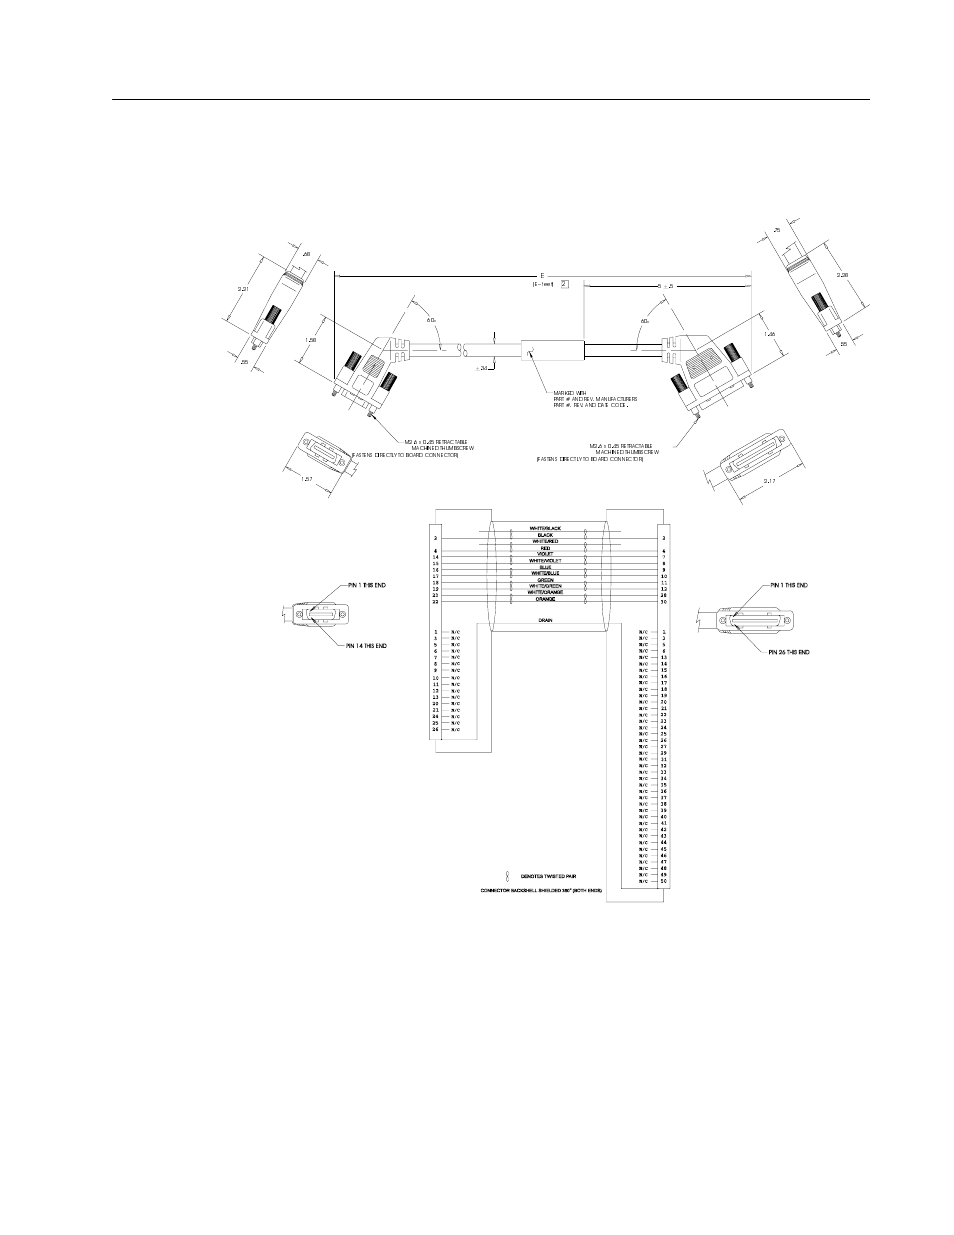 Interface cables, Cable diagrams, schematics and examples